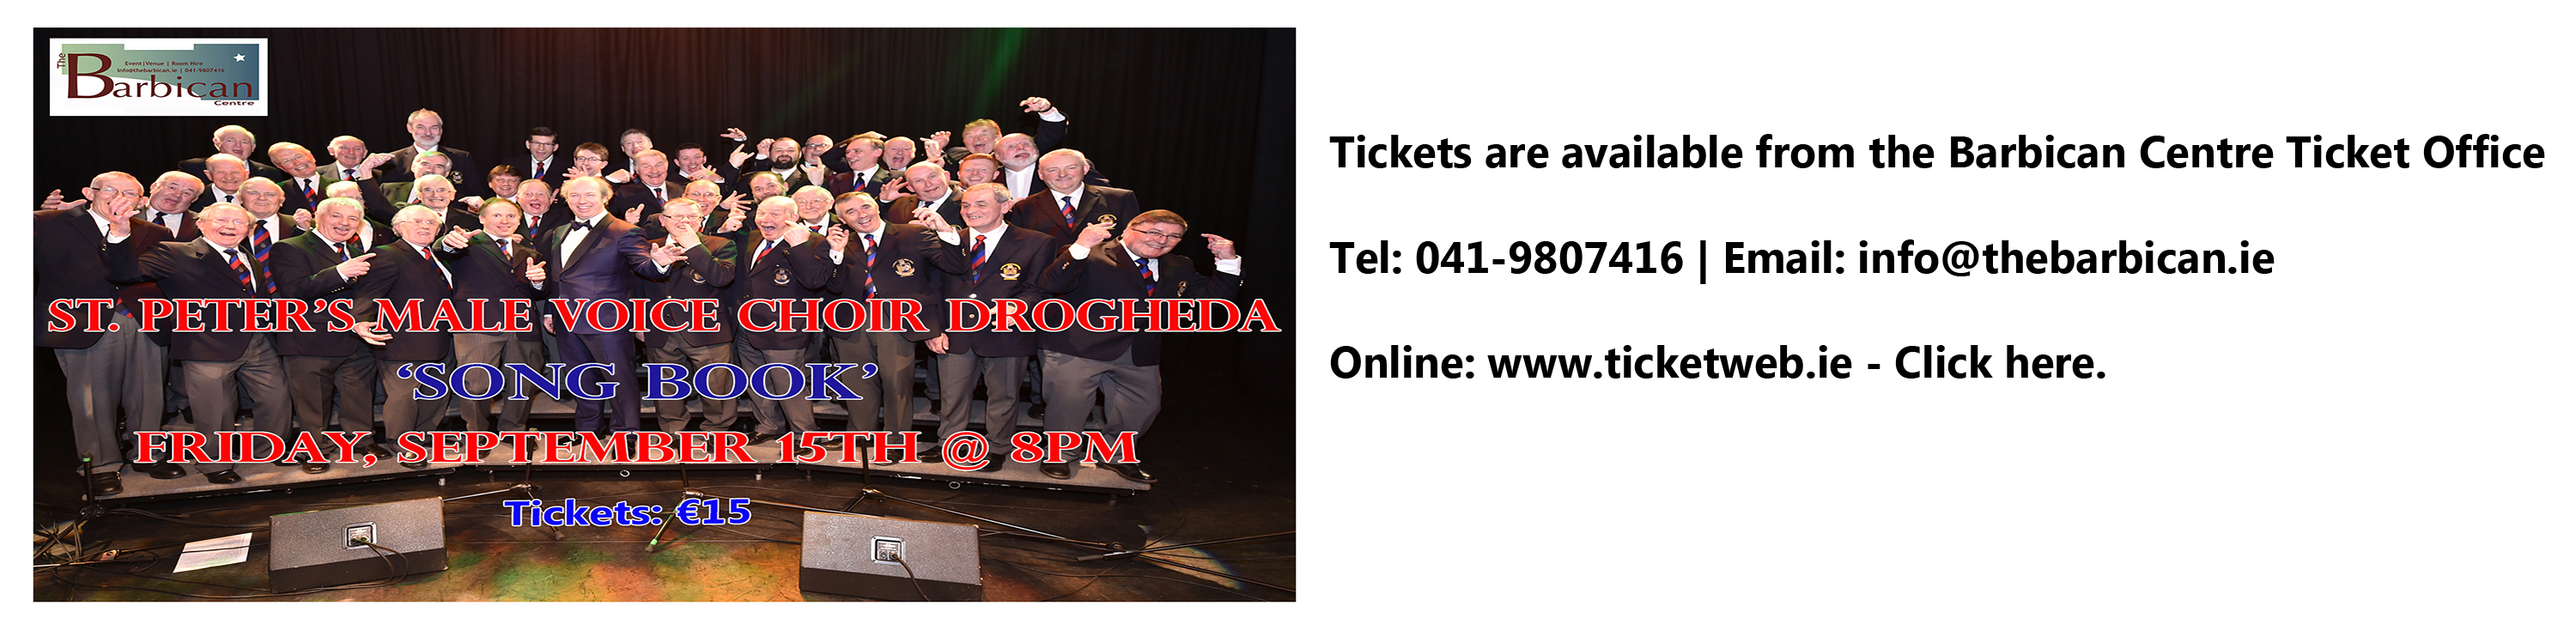 https://www.ticketweb.ie/event/st-peters-male-voice-choir-the-barbican-centre-tickets/7645565